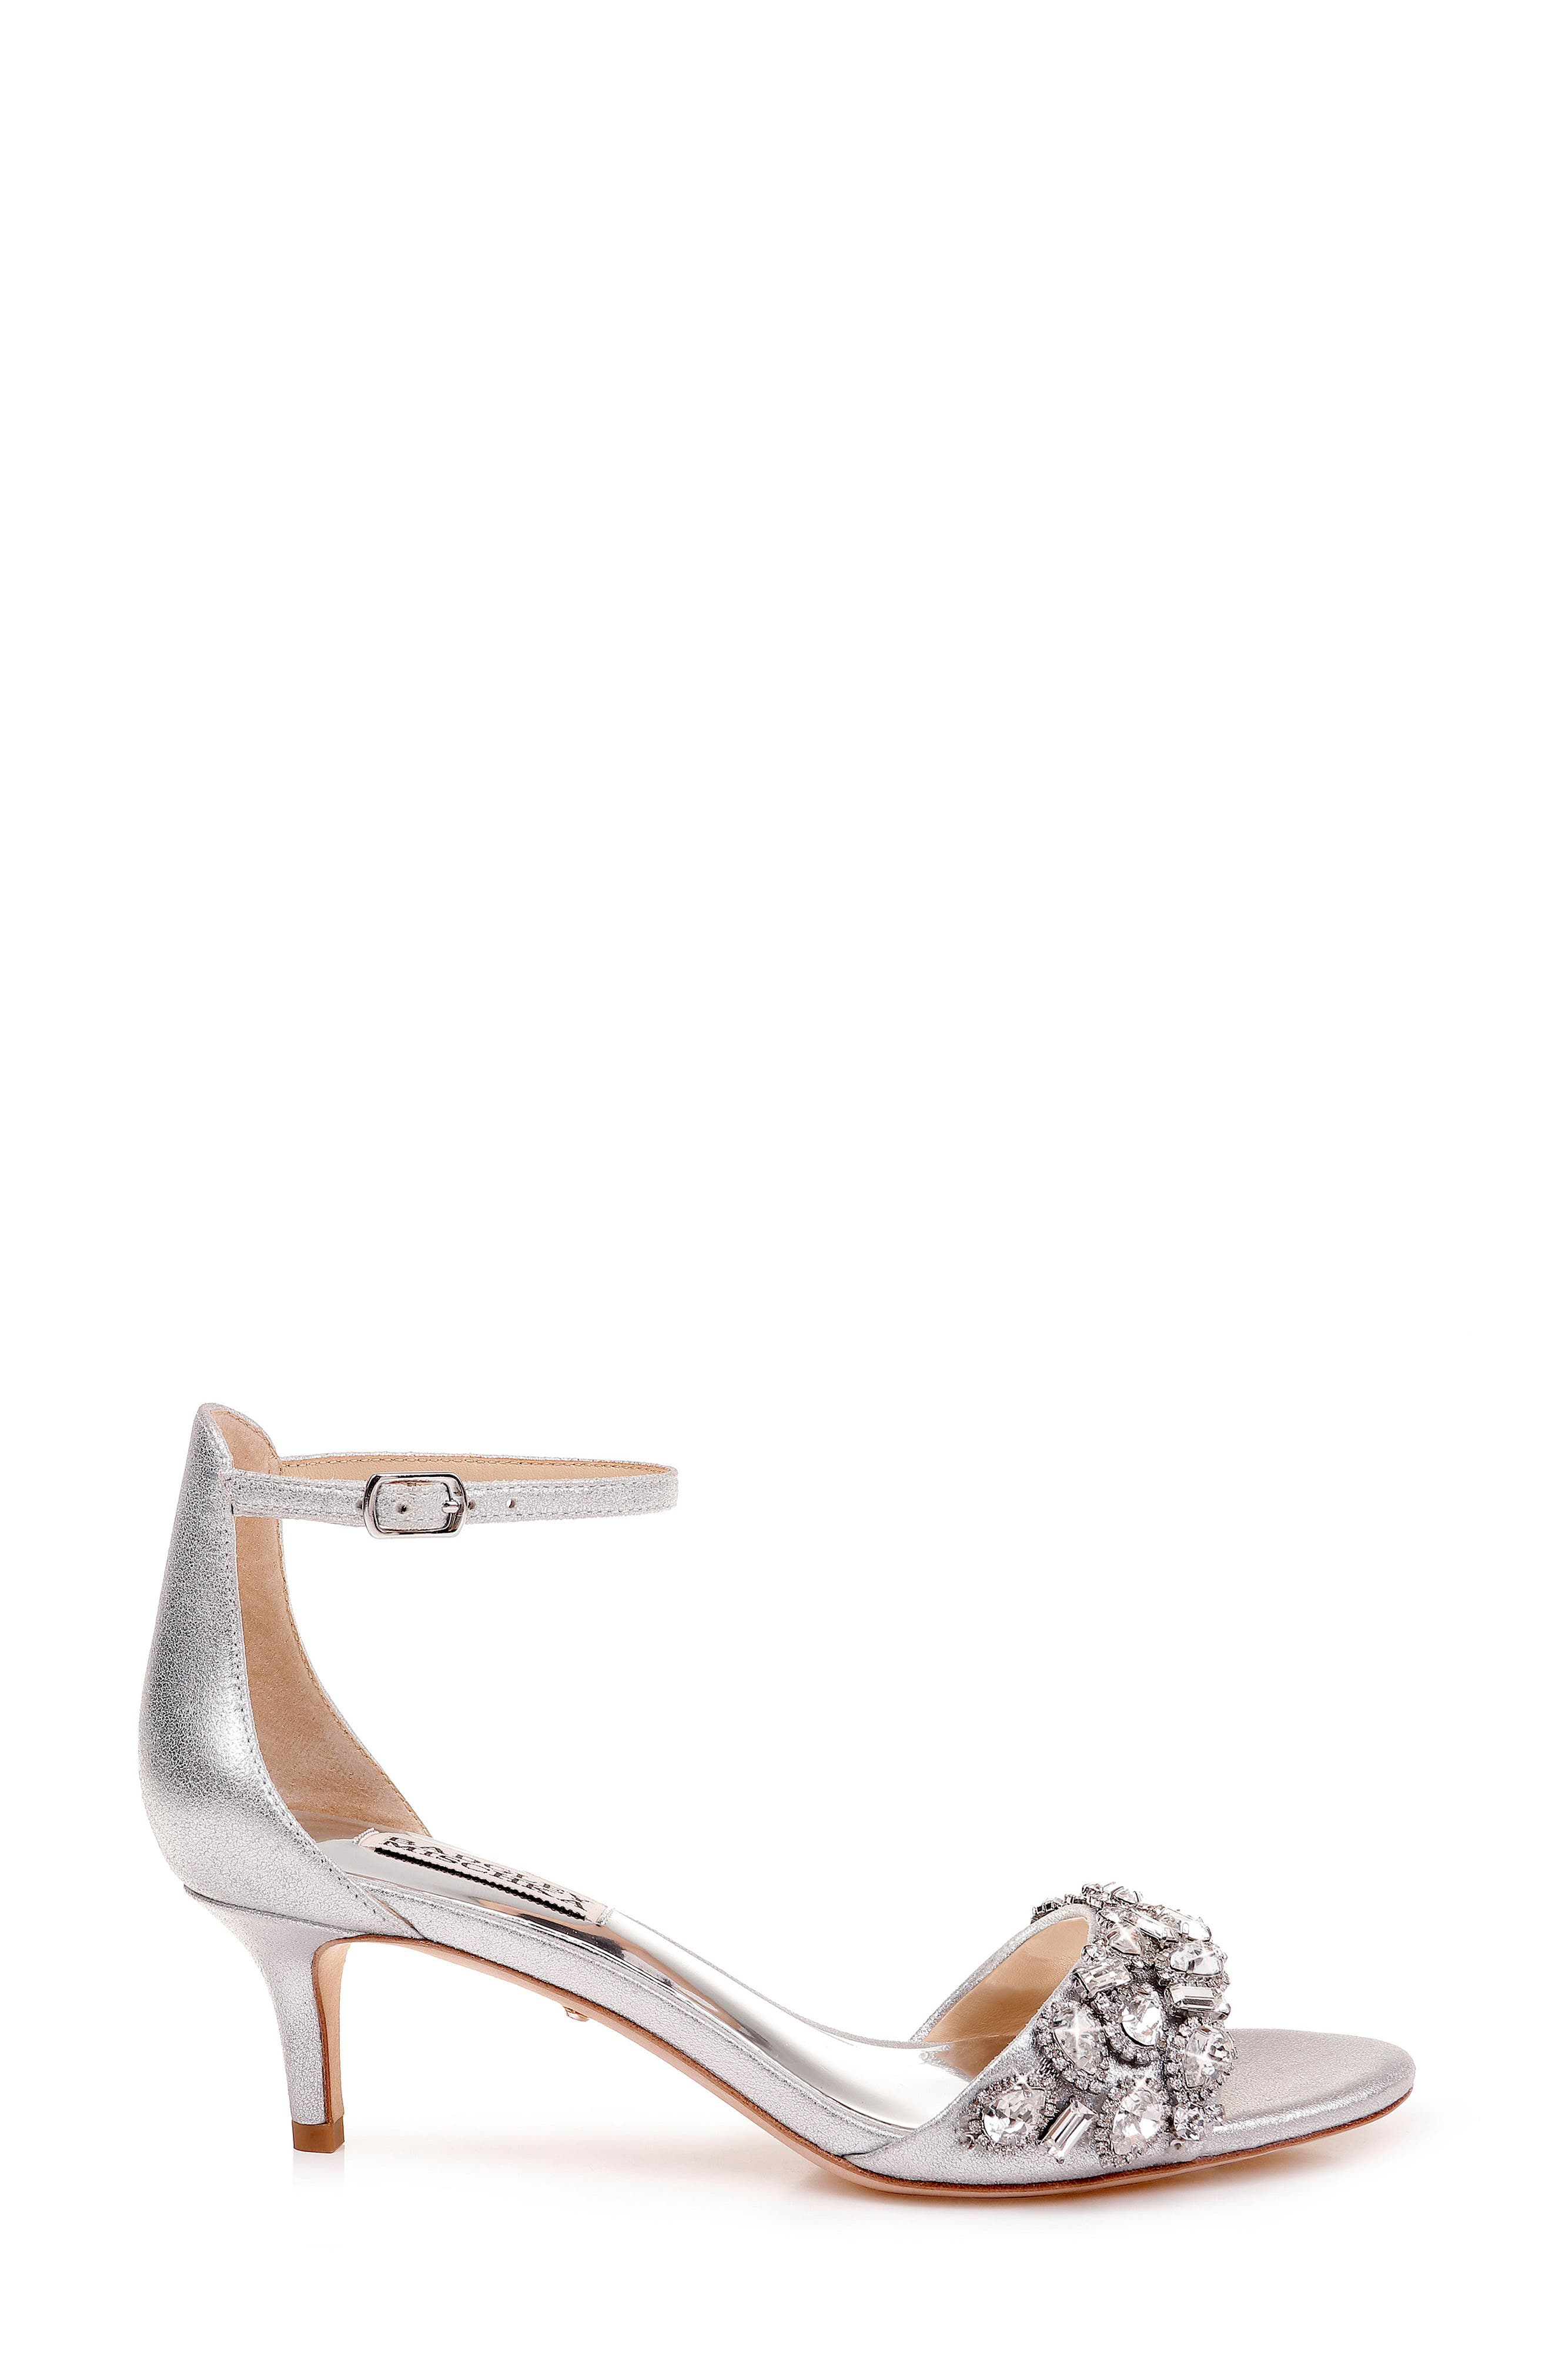 BADGLEY MISCHKA COLLECTION, Badgley Mischka Lara Crystal Embellished Sandal, Alternate thumbnail 4, color, SILVER METALLIC SUEDE